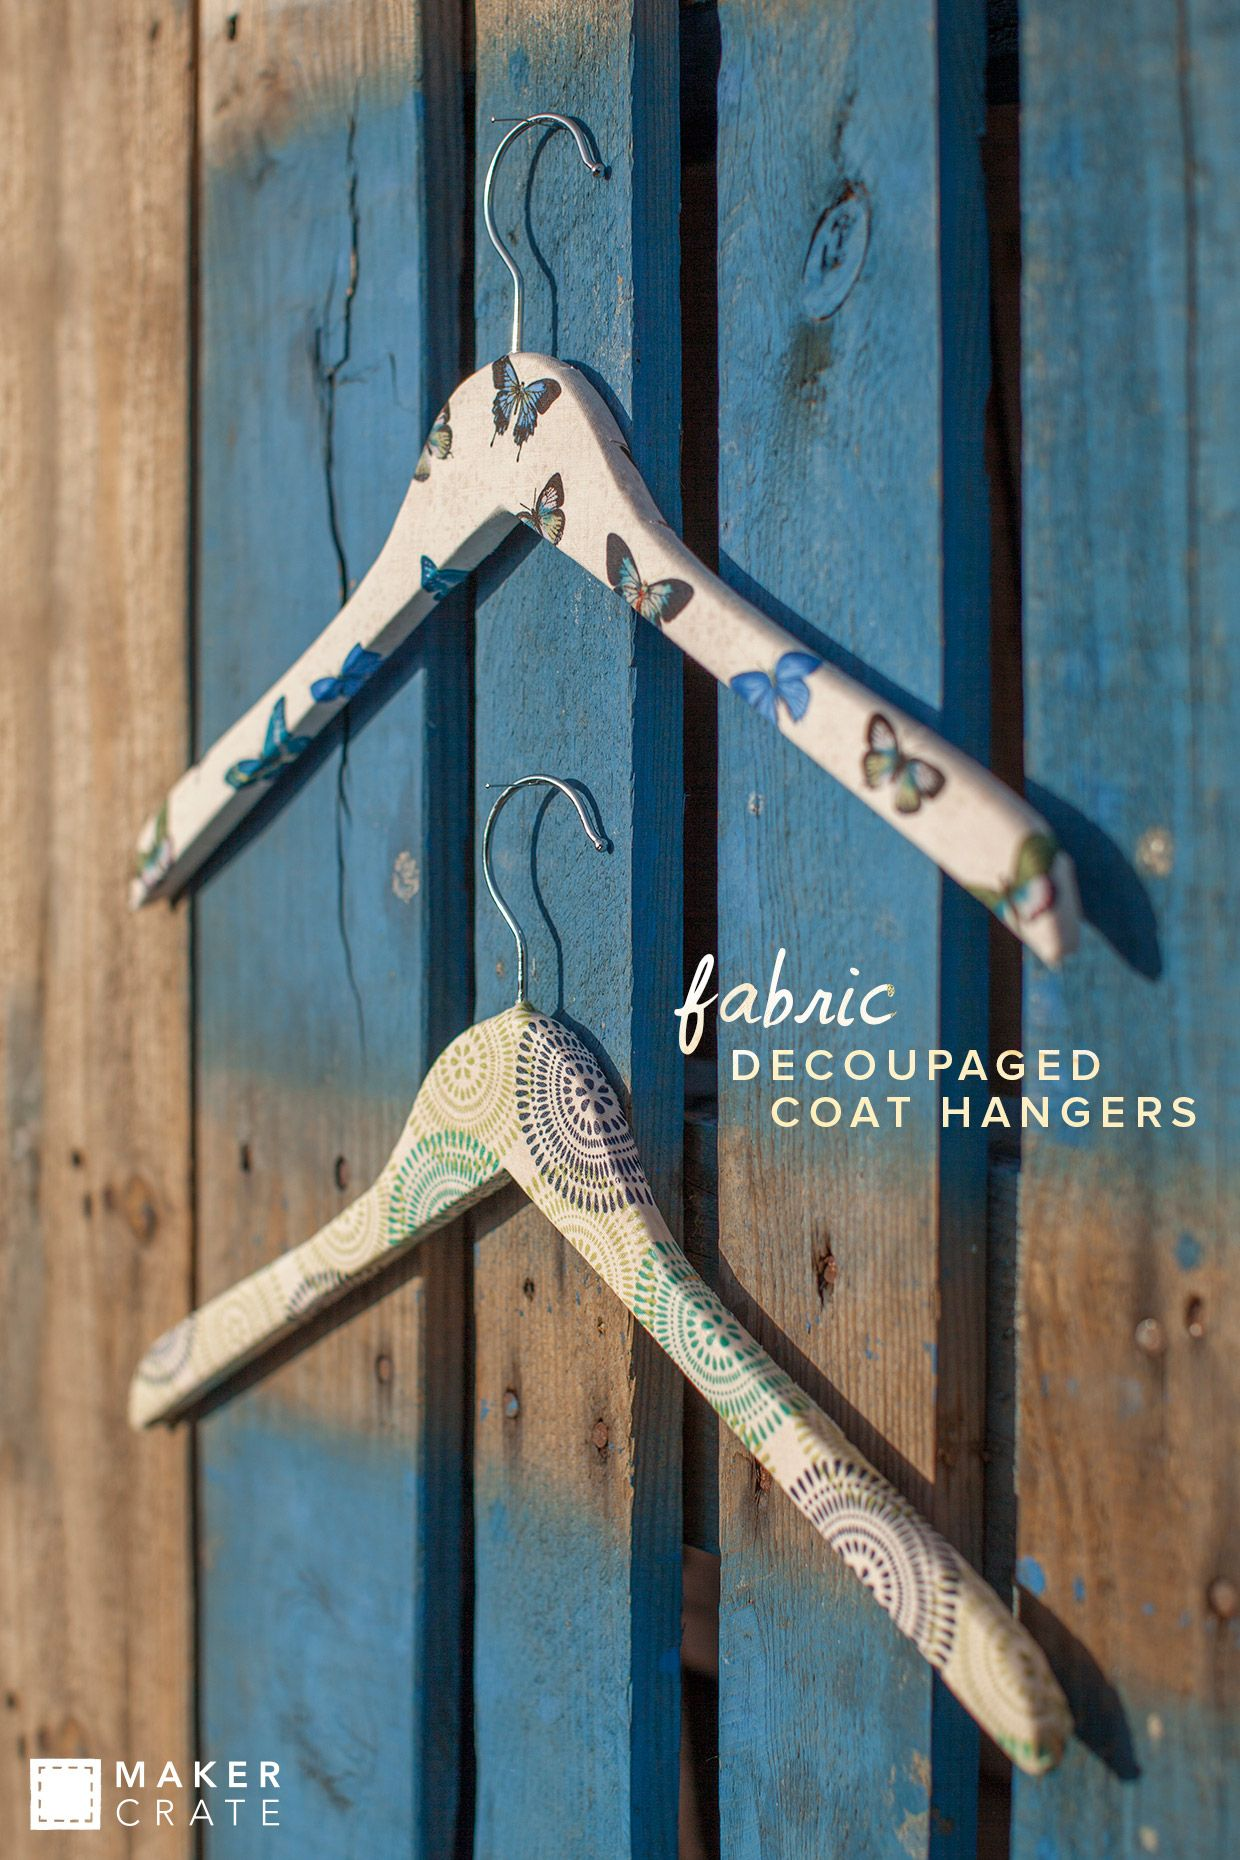 Fabric Decoupaged Coat Hangers